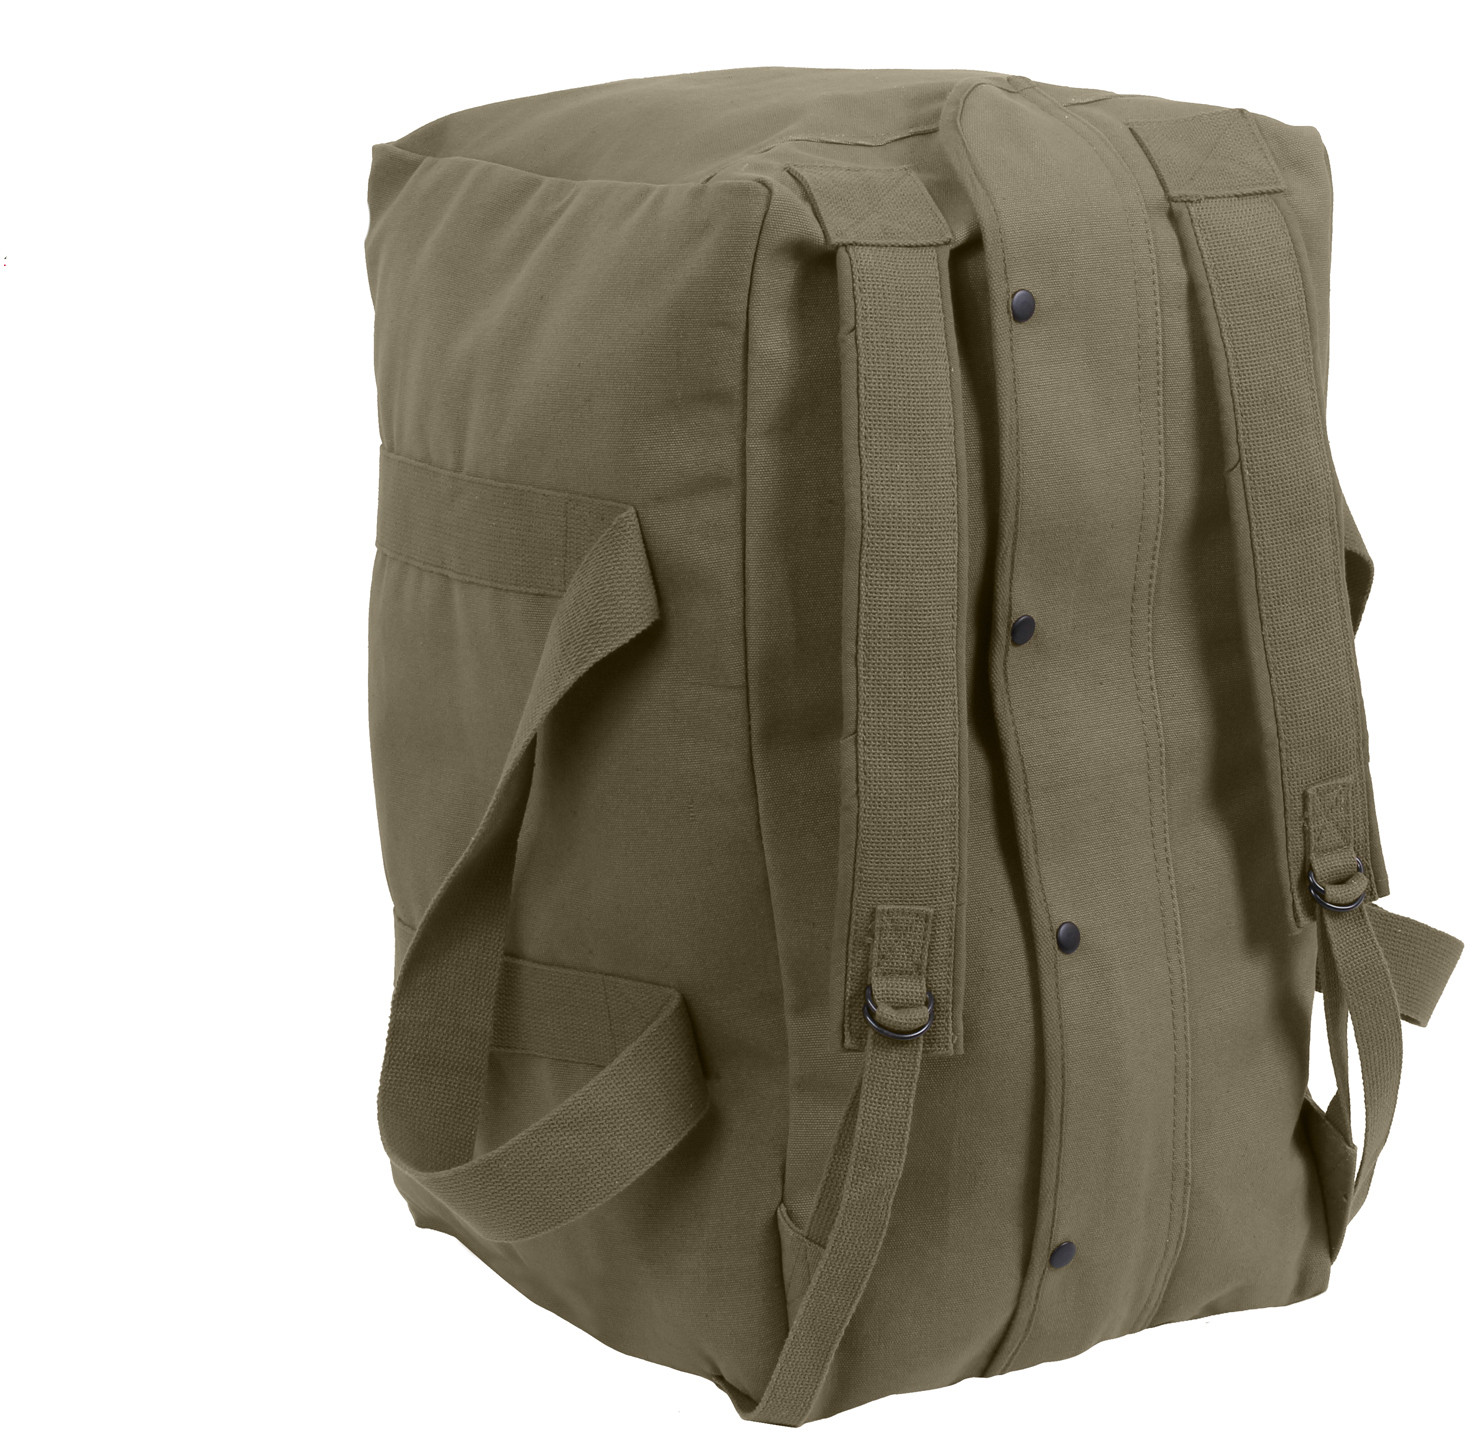 Olive Drab Canvas Mossad Type Tactical Canvas Cargo Bag fce67a2bf63